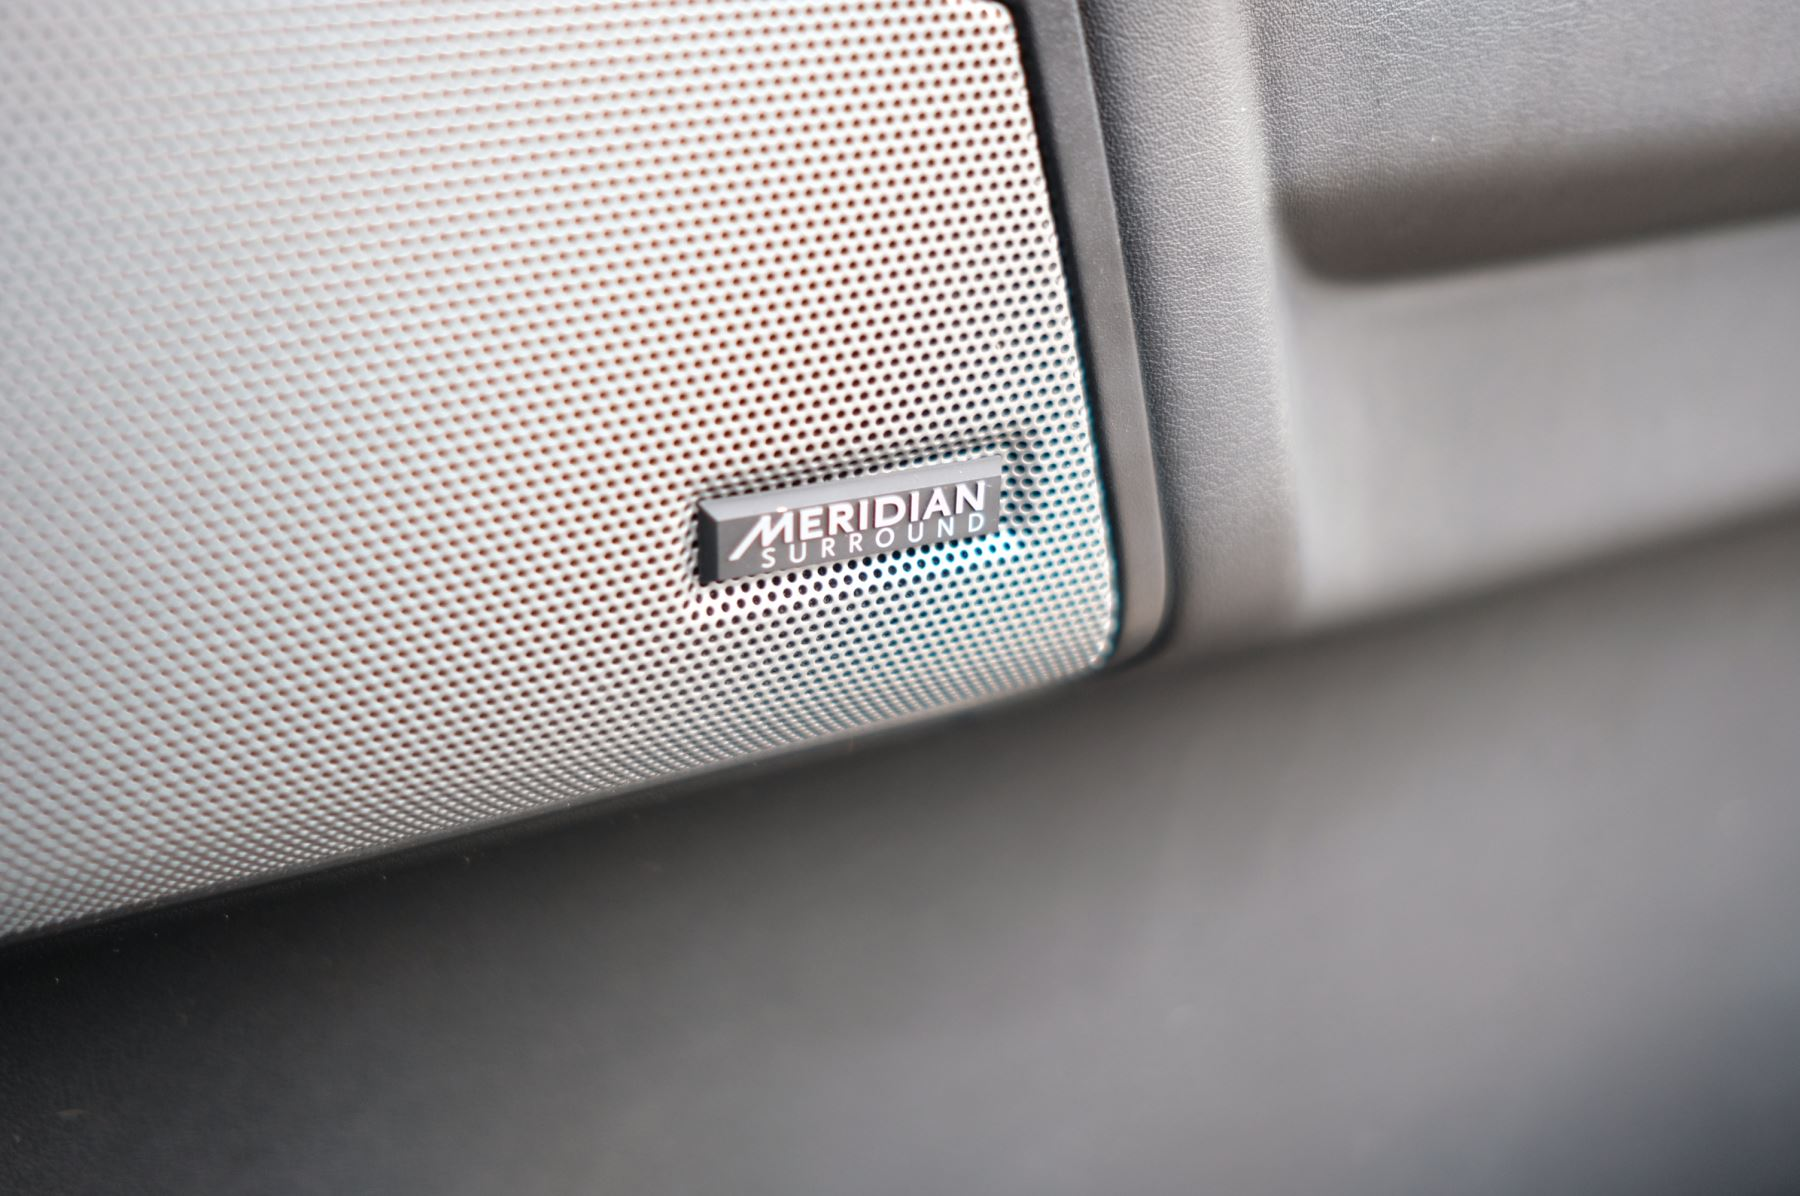 Land Rover Discovery 3.0 SDV6 HSE Luxury 5dr image 30